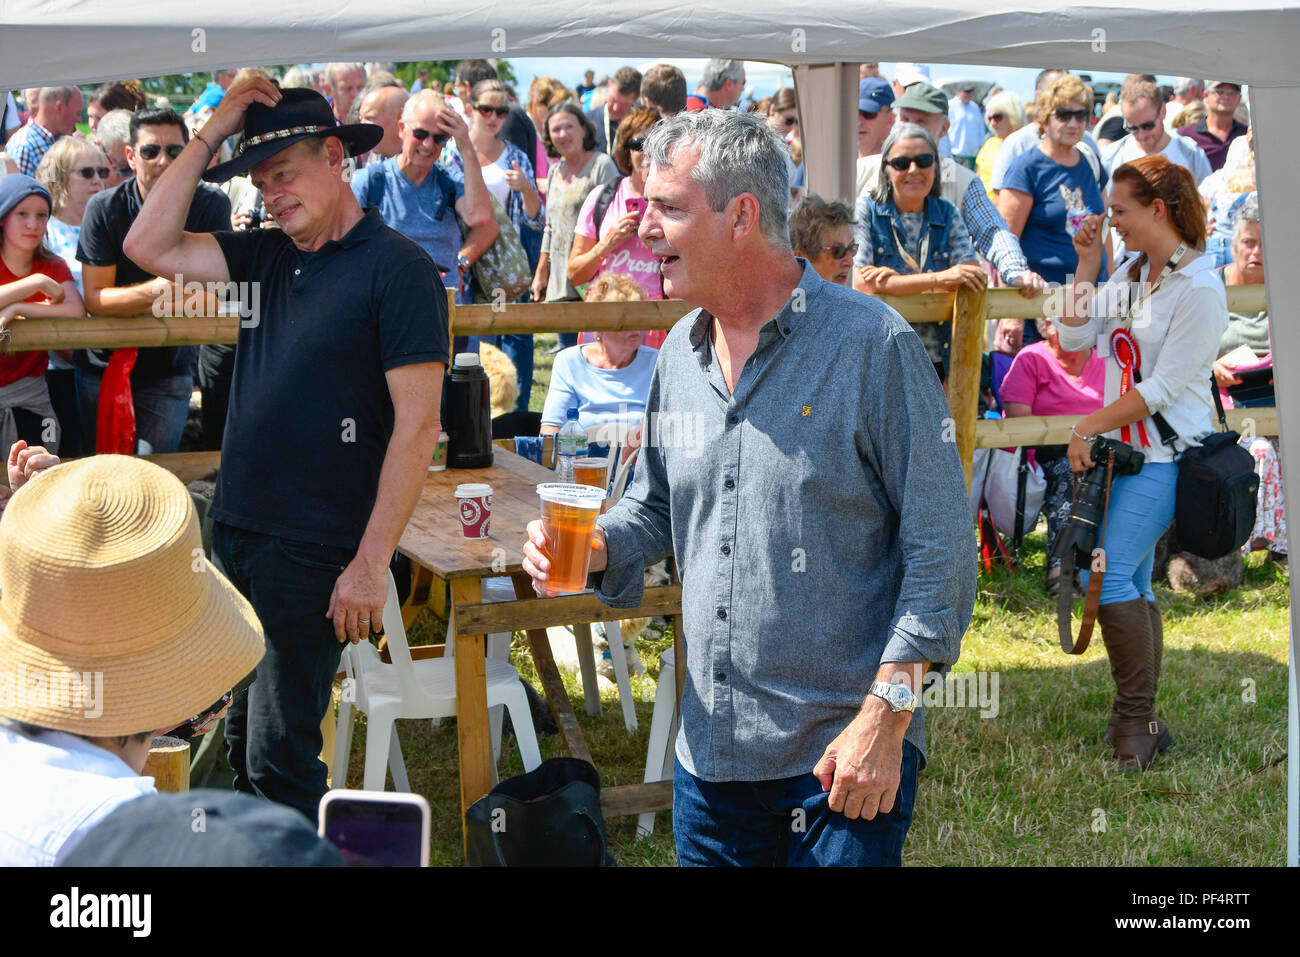 Beaminster, Dorset, UK.  19th August 2018. UK Weather.  Actor Martin Clunes with Actor Neil Morrissey who has a pint of lager at Buckham Fair at Beaminster, Dorset.  Picture Credit: Graham Hunt/Alamy Live News - Stock Image